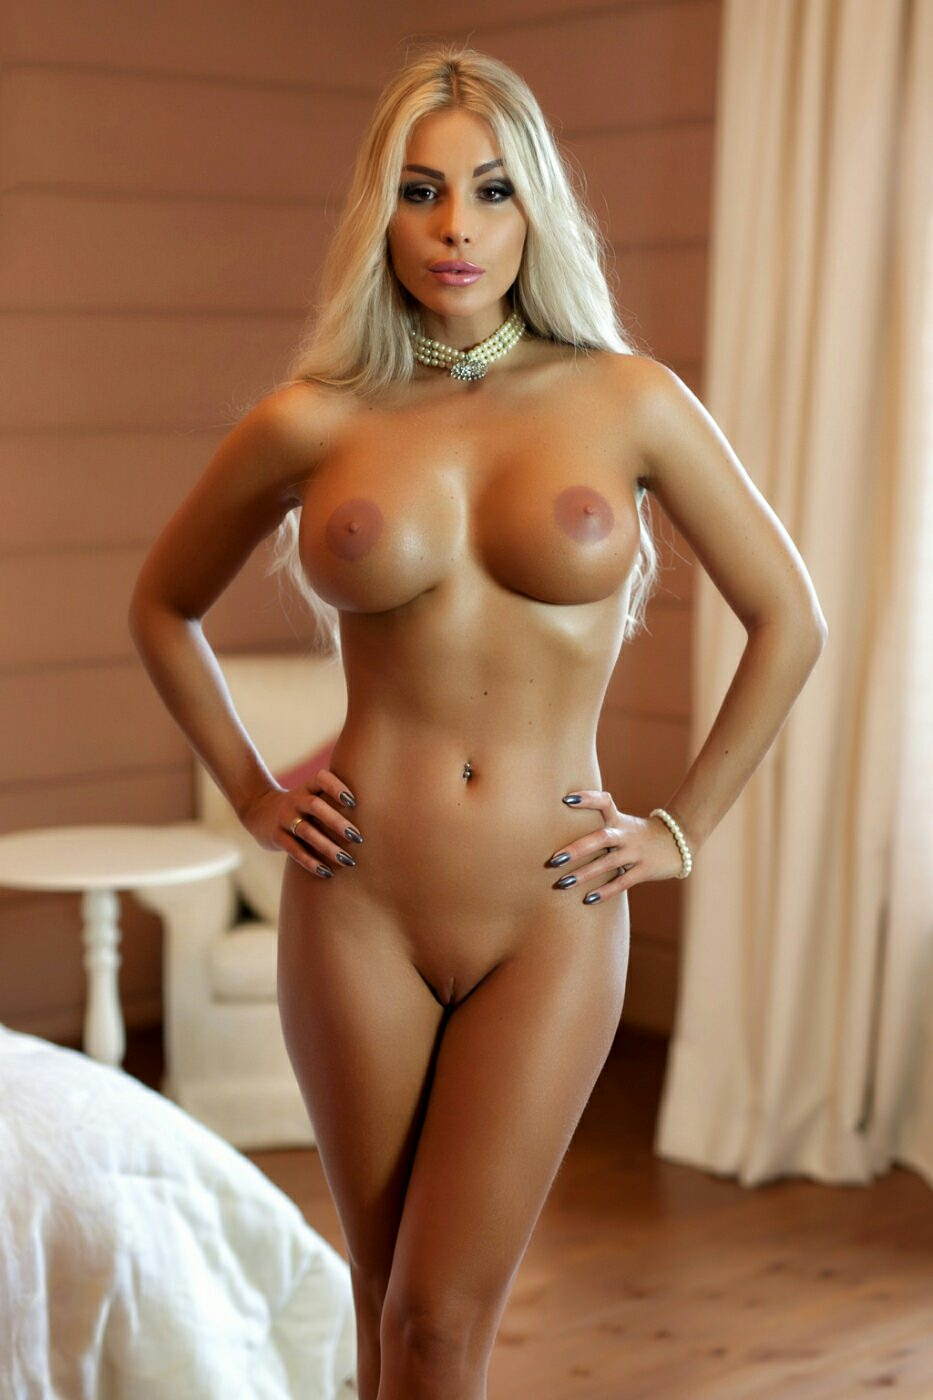 Escorts south uk punterlink Asian Escorts In London, Japanese, Chinese, Oriental Escort, Wonder Girls